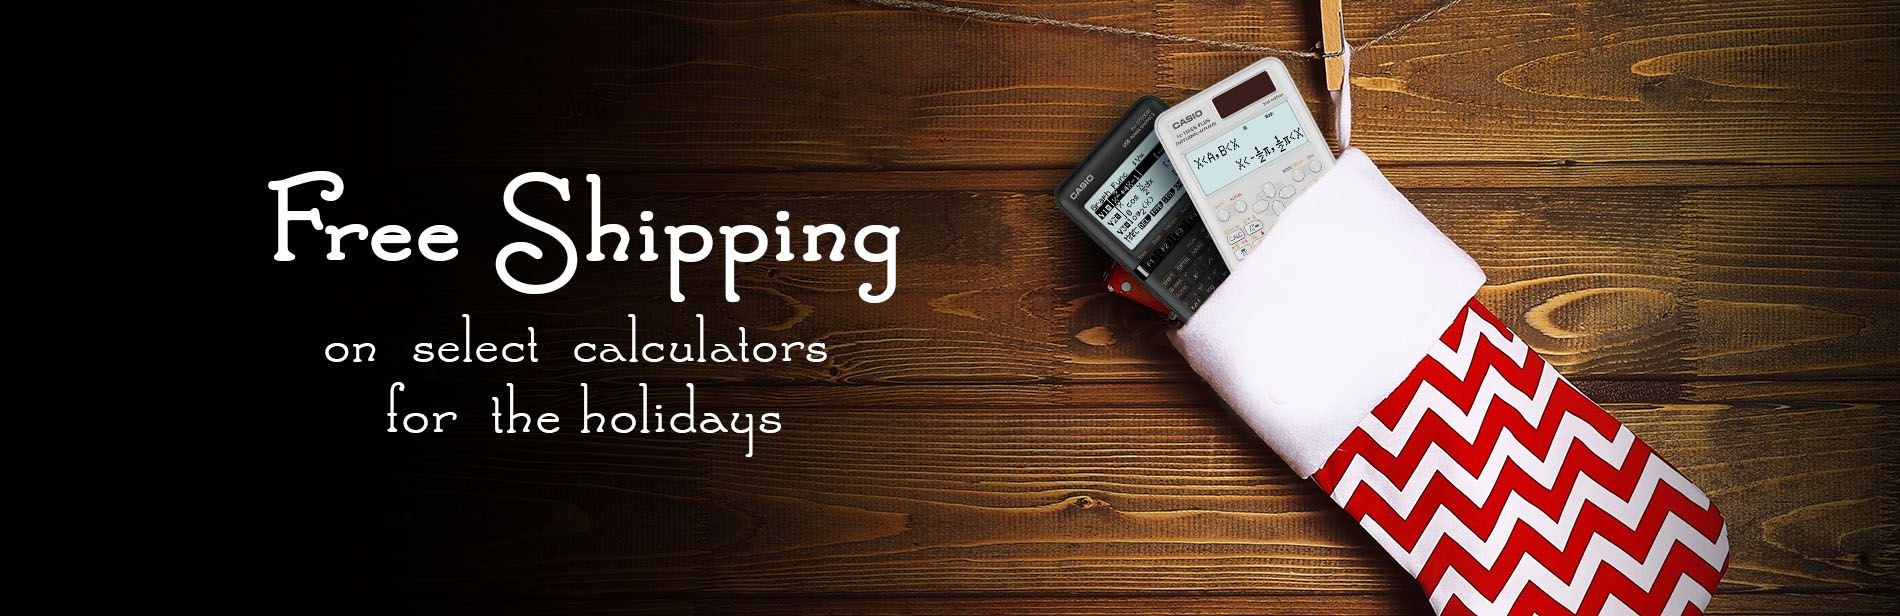 Free shipping on select calculators for the holidays